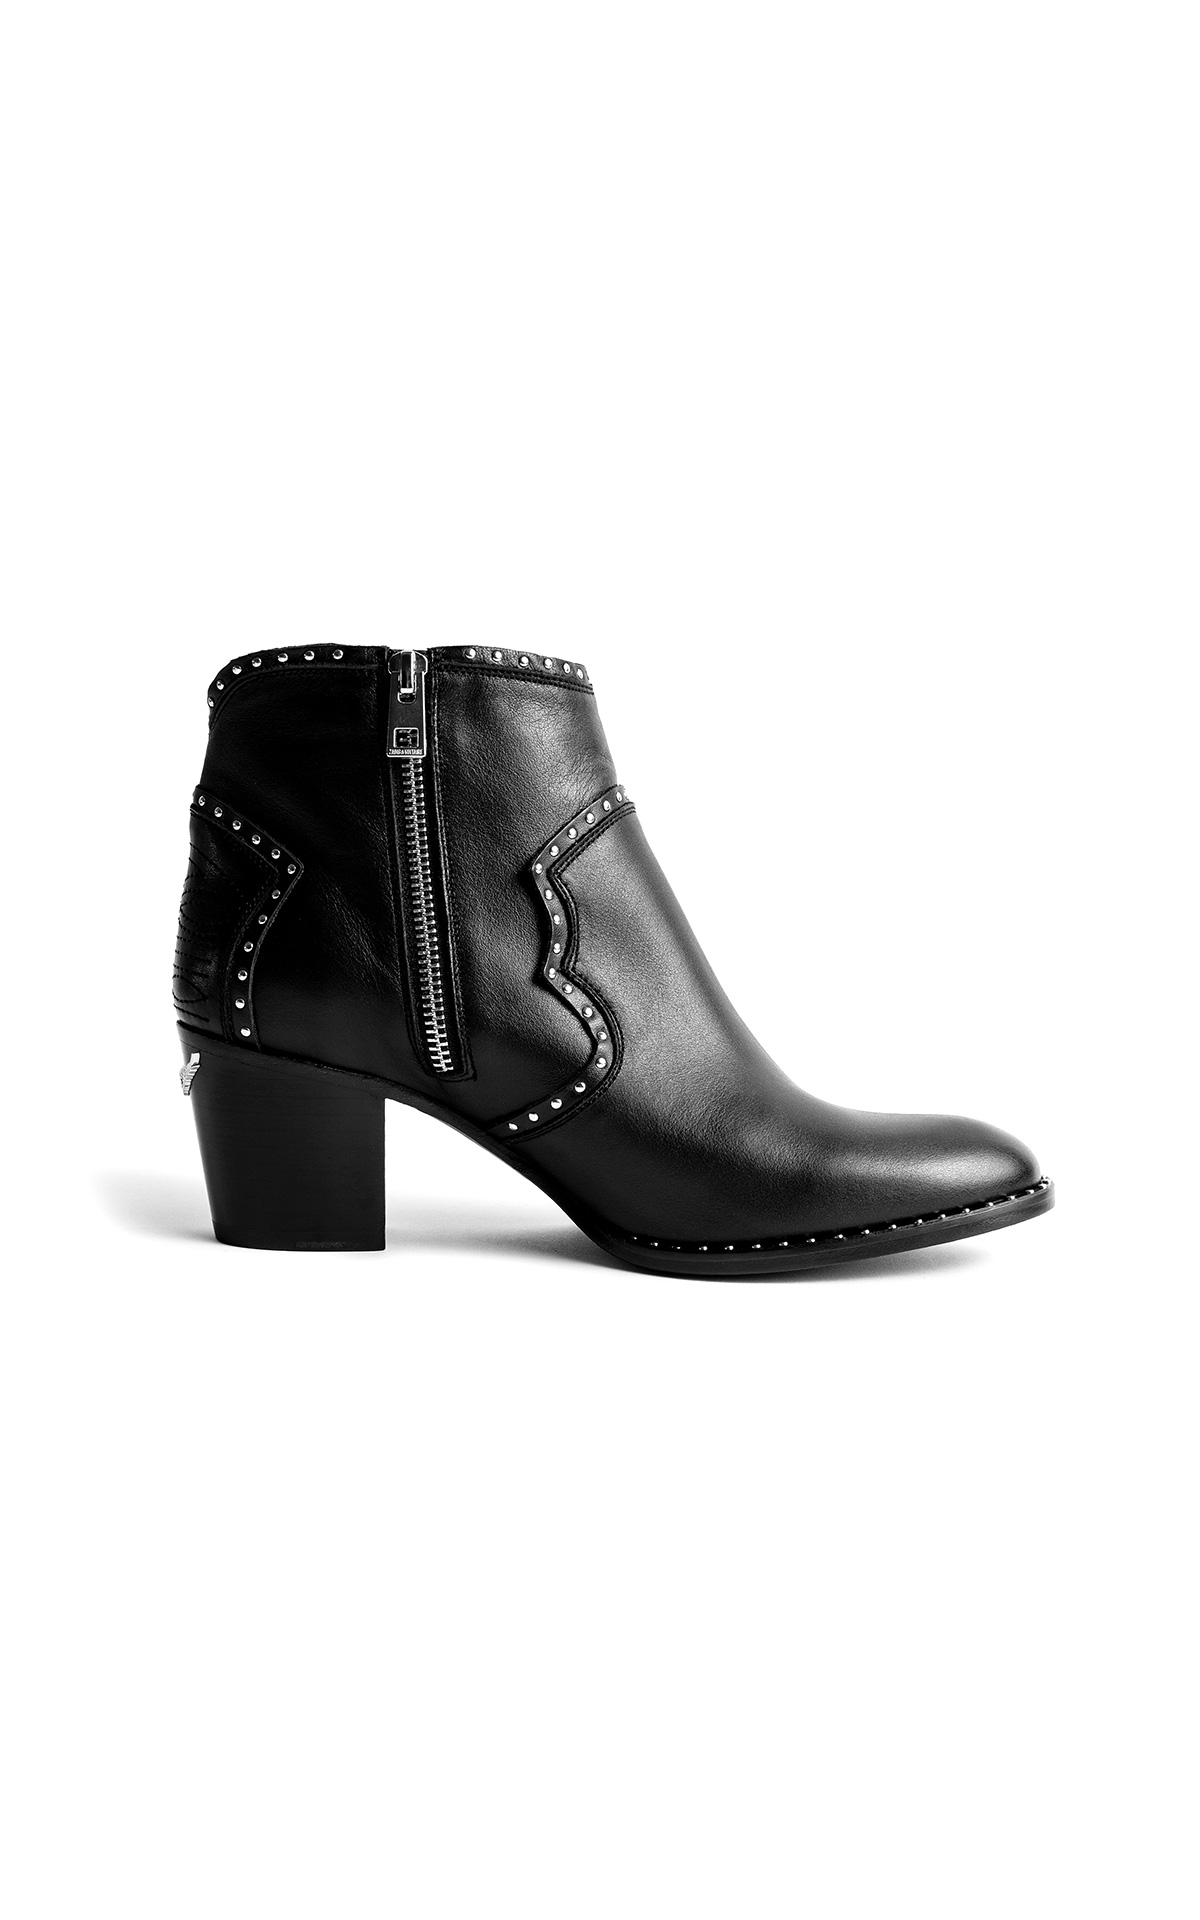 Zadig & Voltaire Bottines Molly Studs noires | La Vallée Village